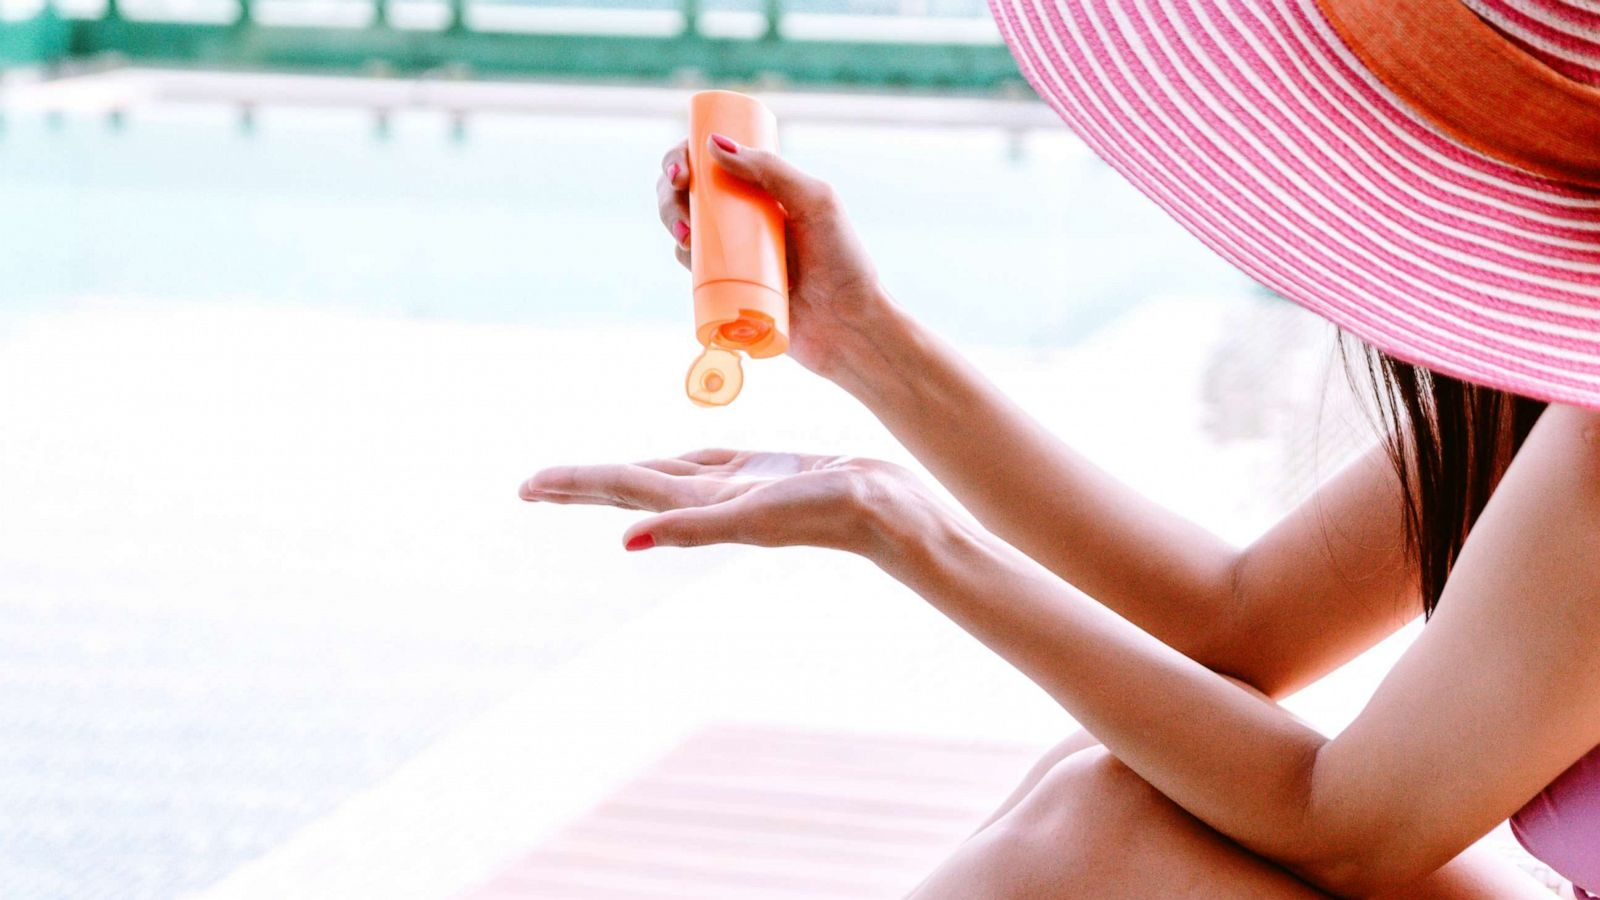 Sunscreen for better skin